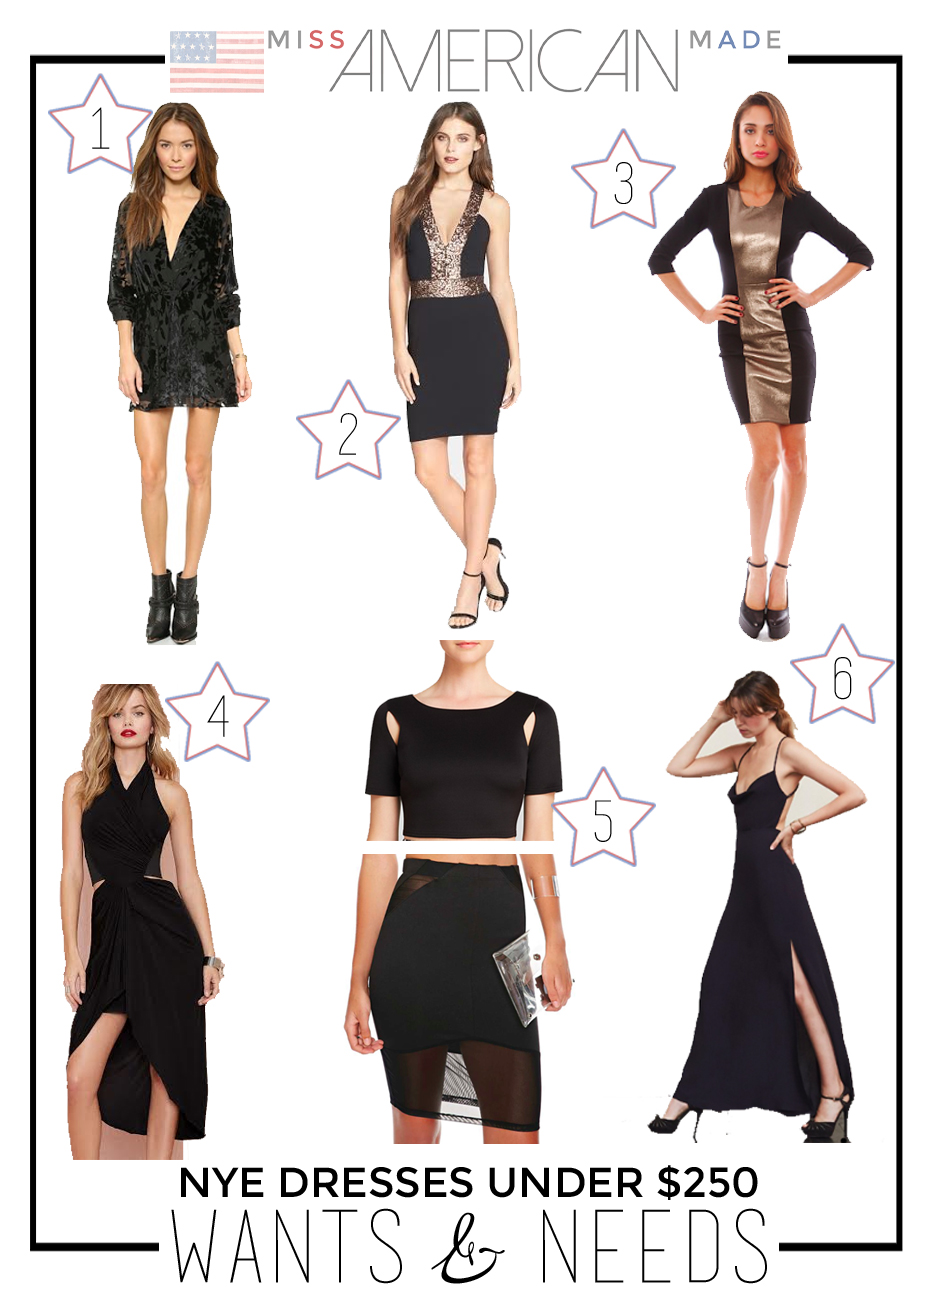 New Year's Eve Dresses made in USA under $250